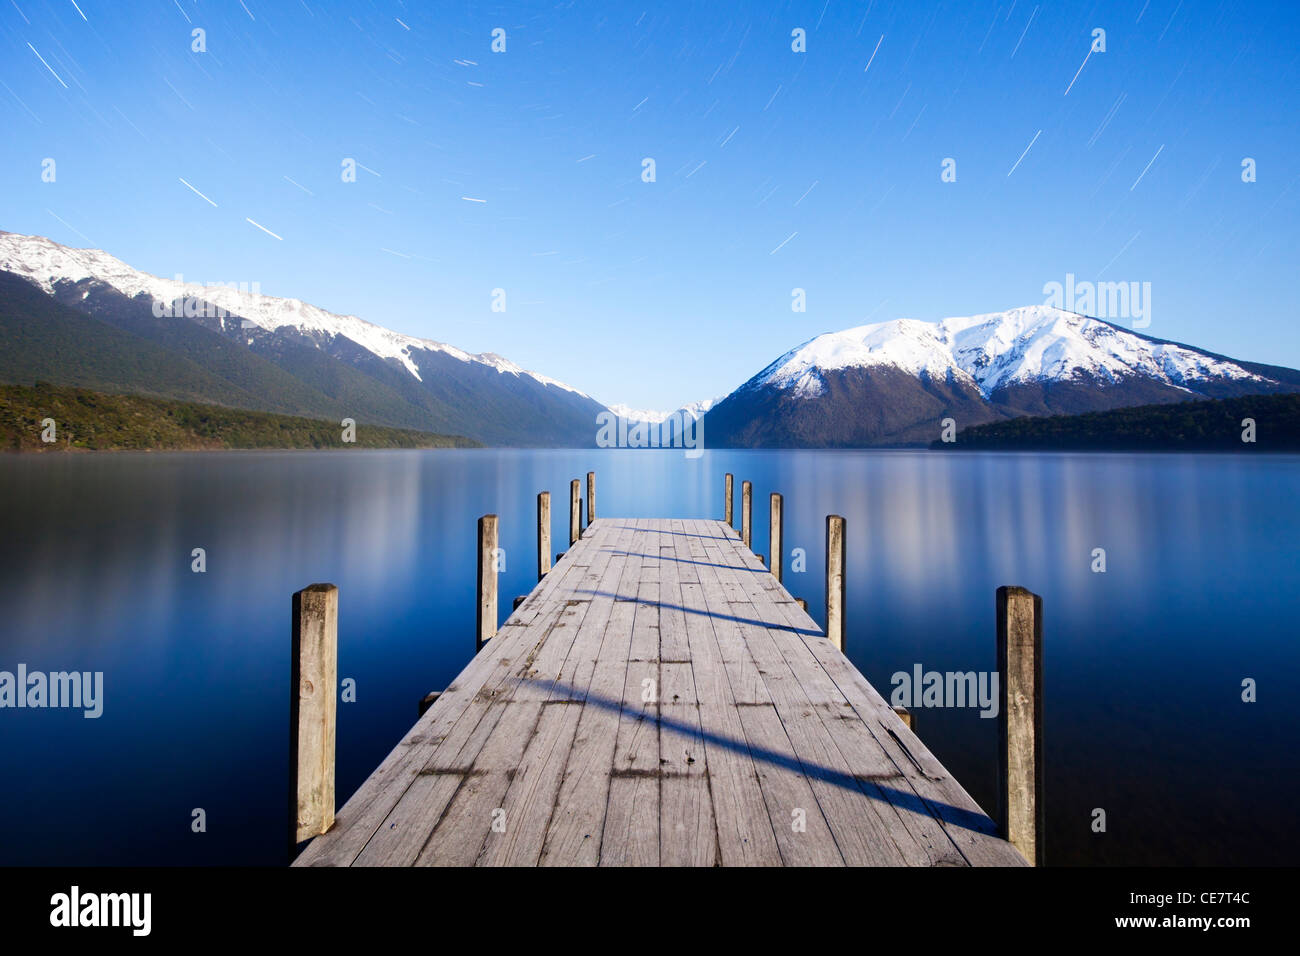 The jetty at Lake Rotoiti, Nelson Lakes National Park, New Zealand, by moonlight. Star trails can be see in the - Stock Image